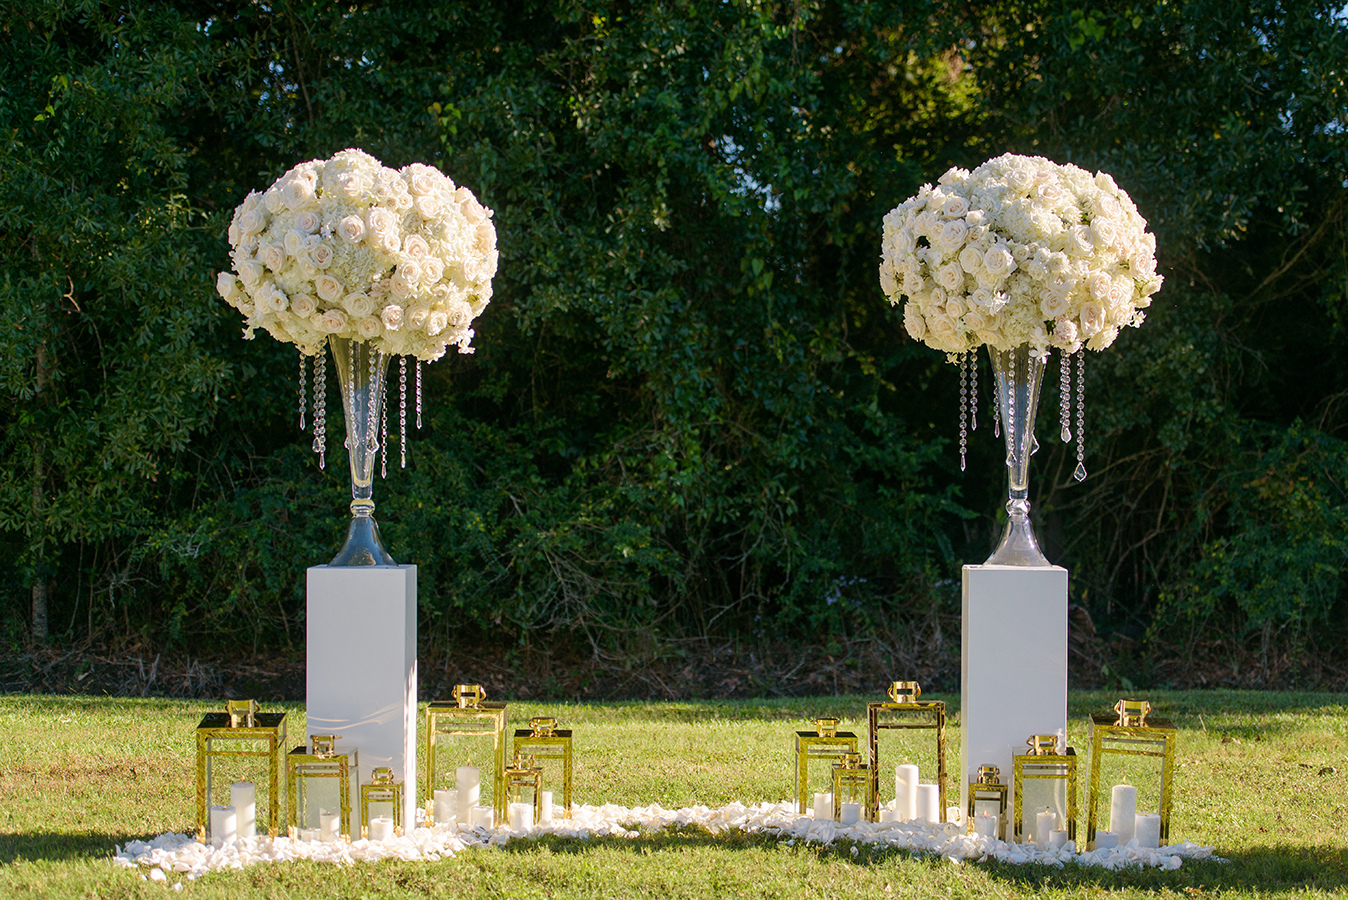 The ceremony altar included large floral arrangements, gold lanterns and rose petals.